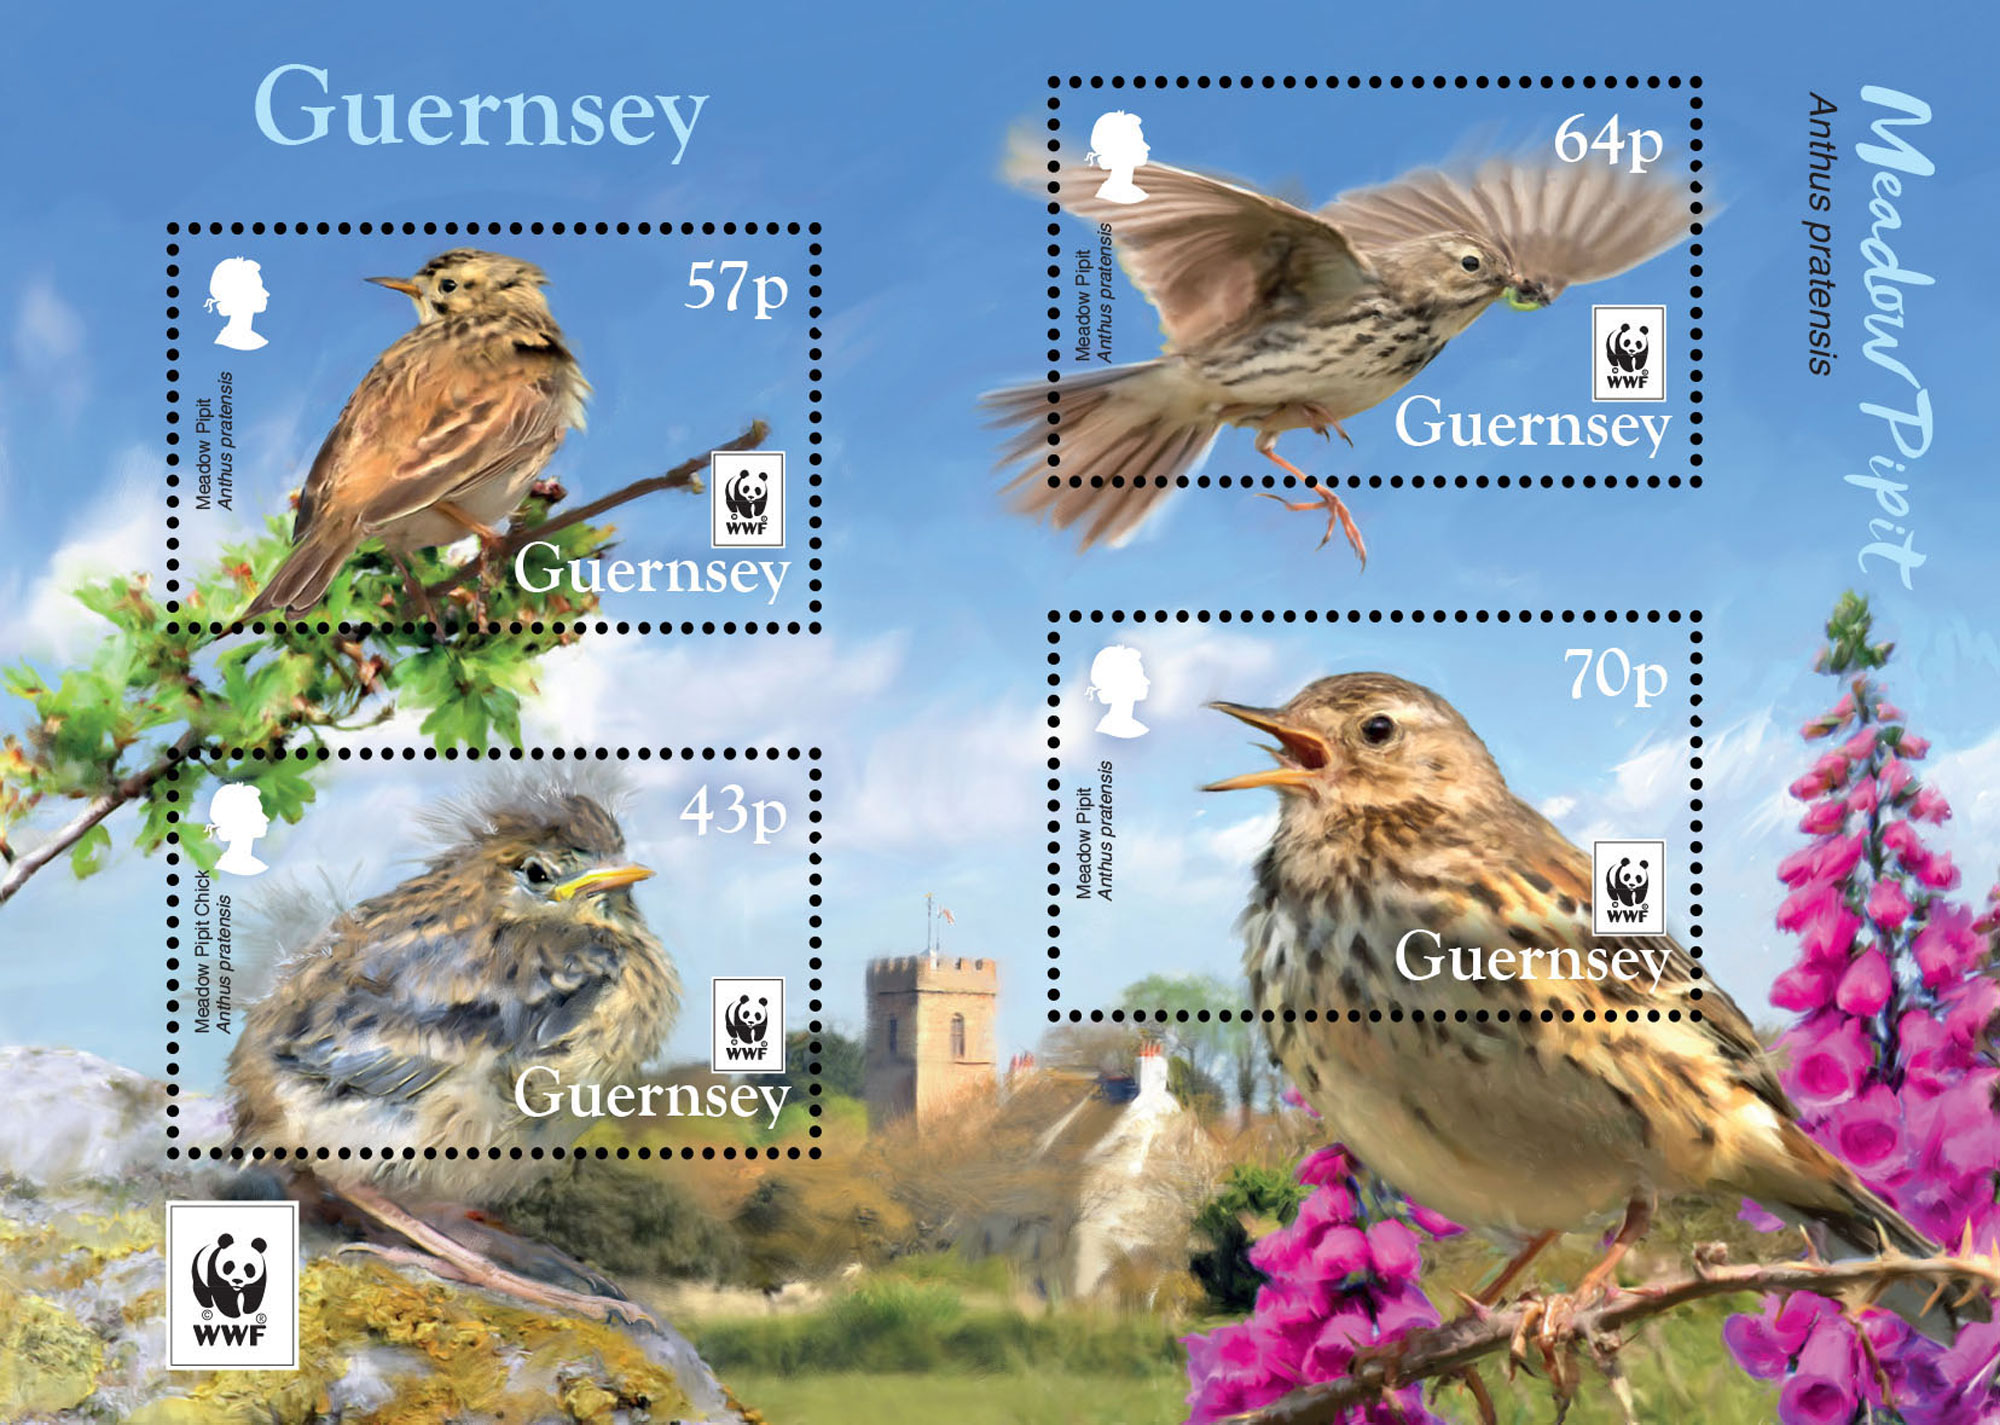 Guernsey Post collaborates with WWF for Endangered species stamps